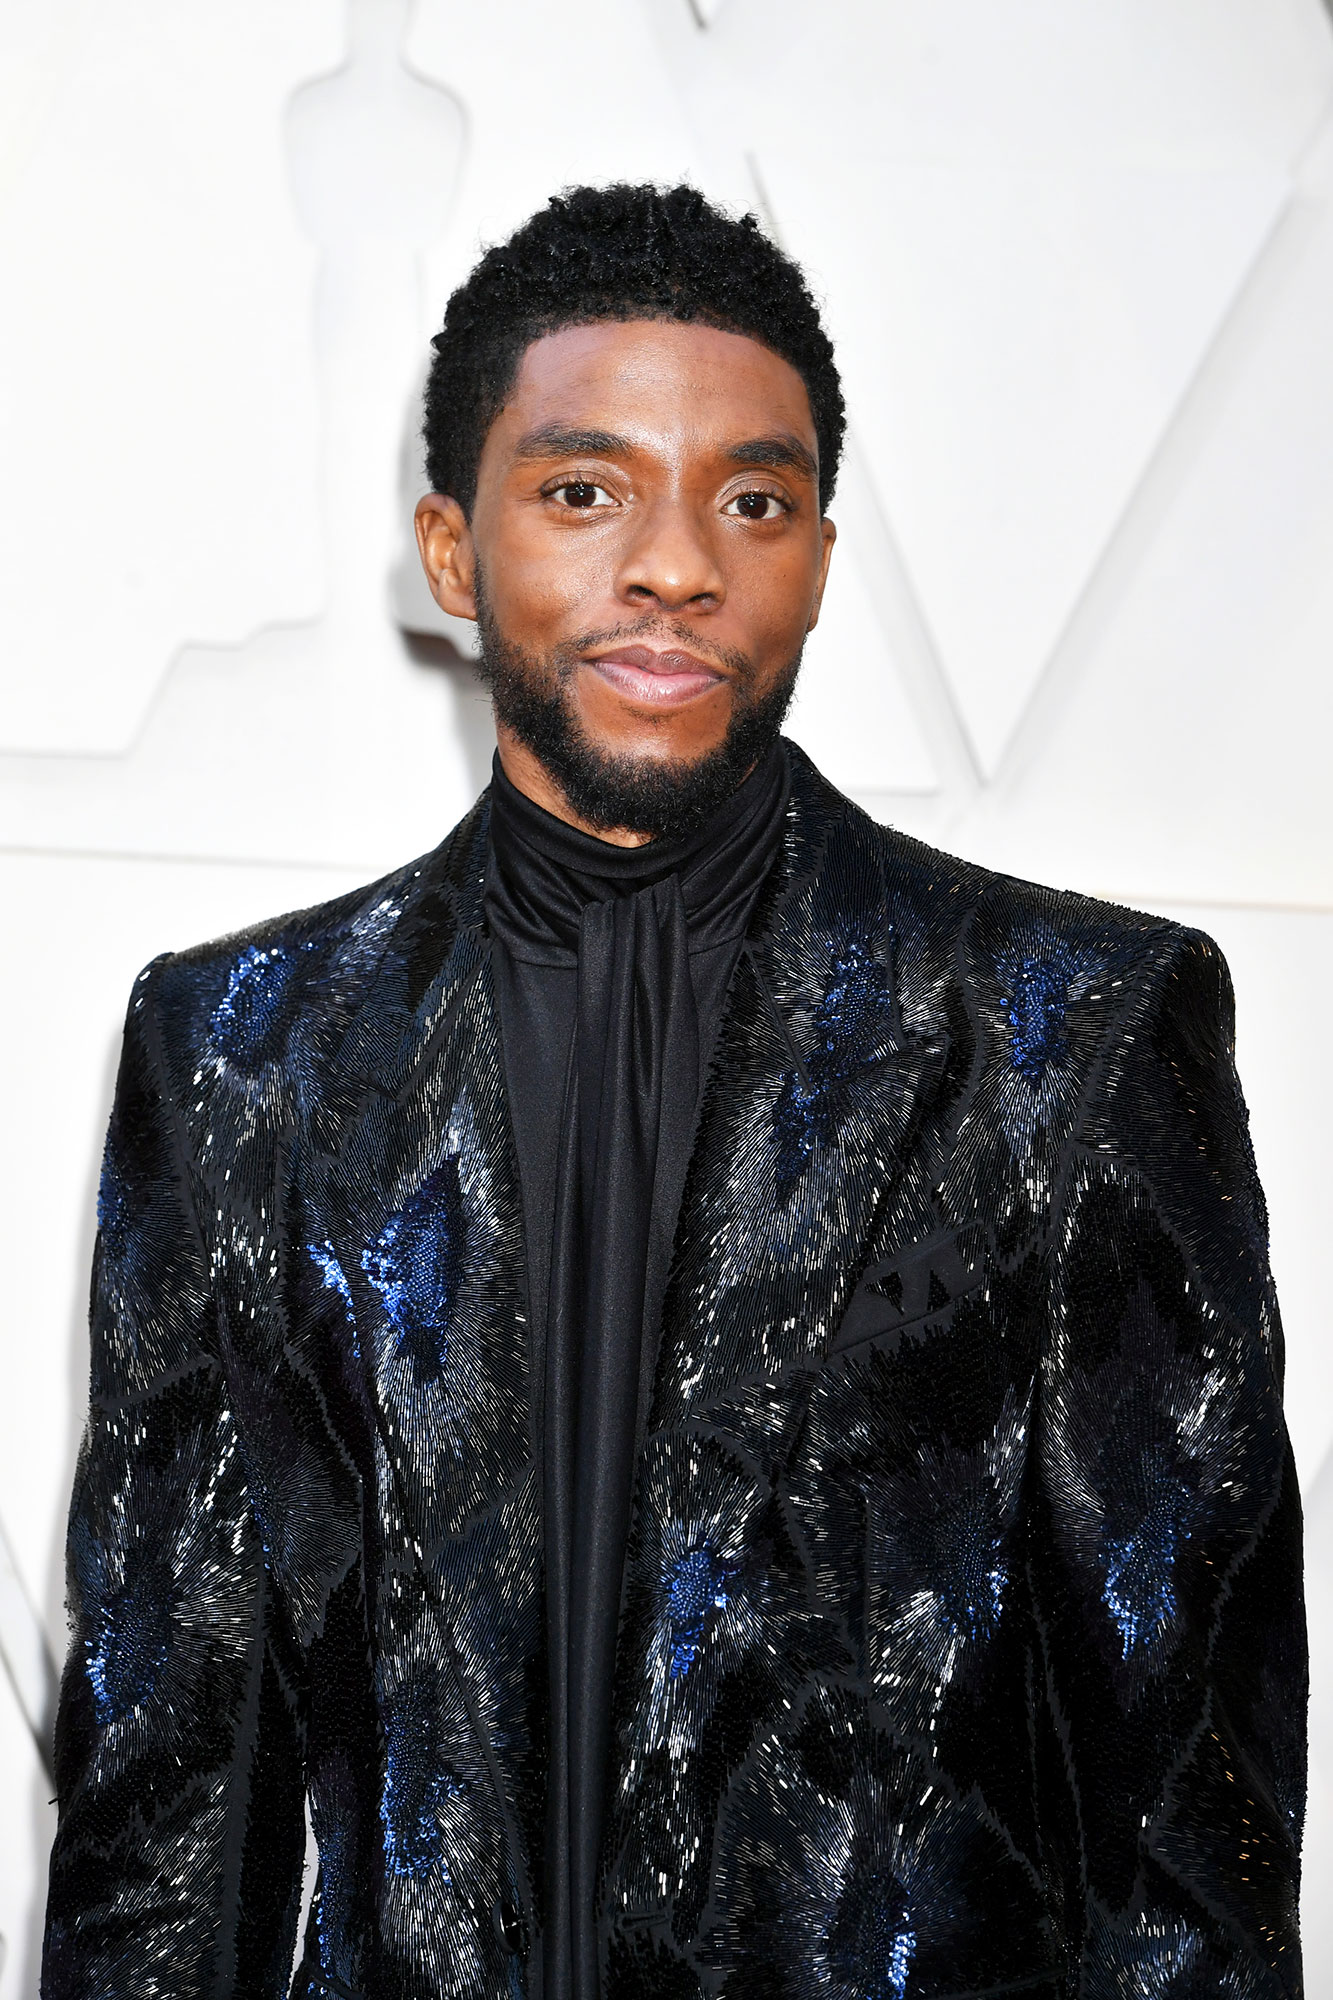 Chadwick Boseman Dead At 43 After Colon Cancer Battle